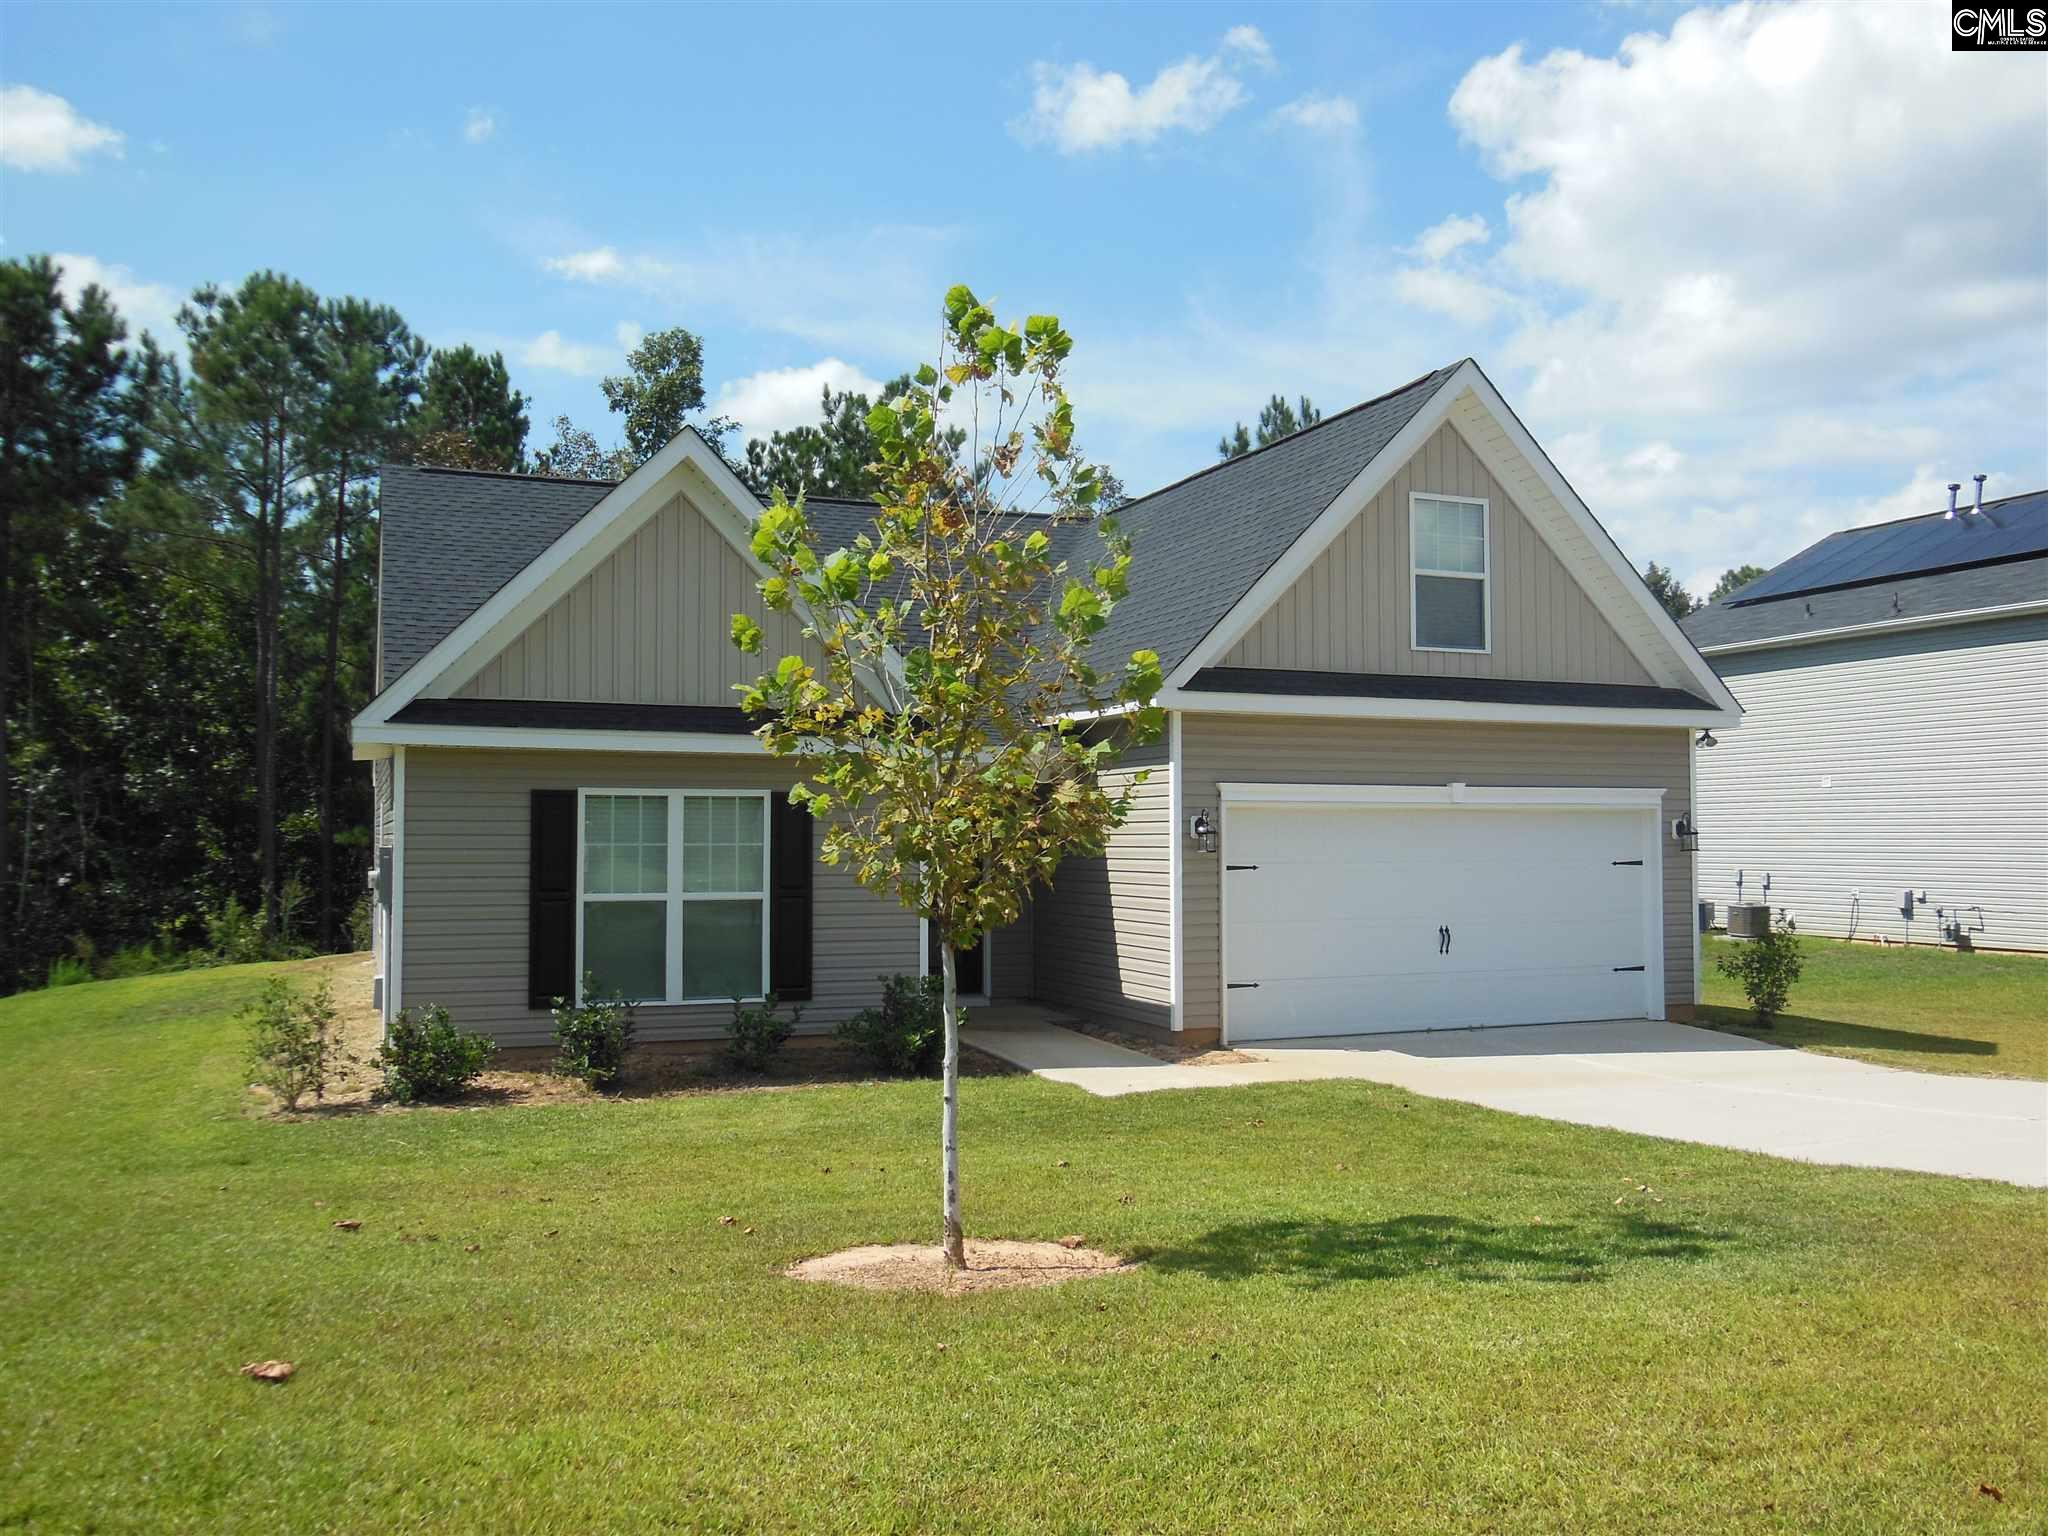 517 Center Creek Blythewood, SC 29016-8198